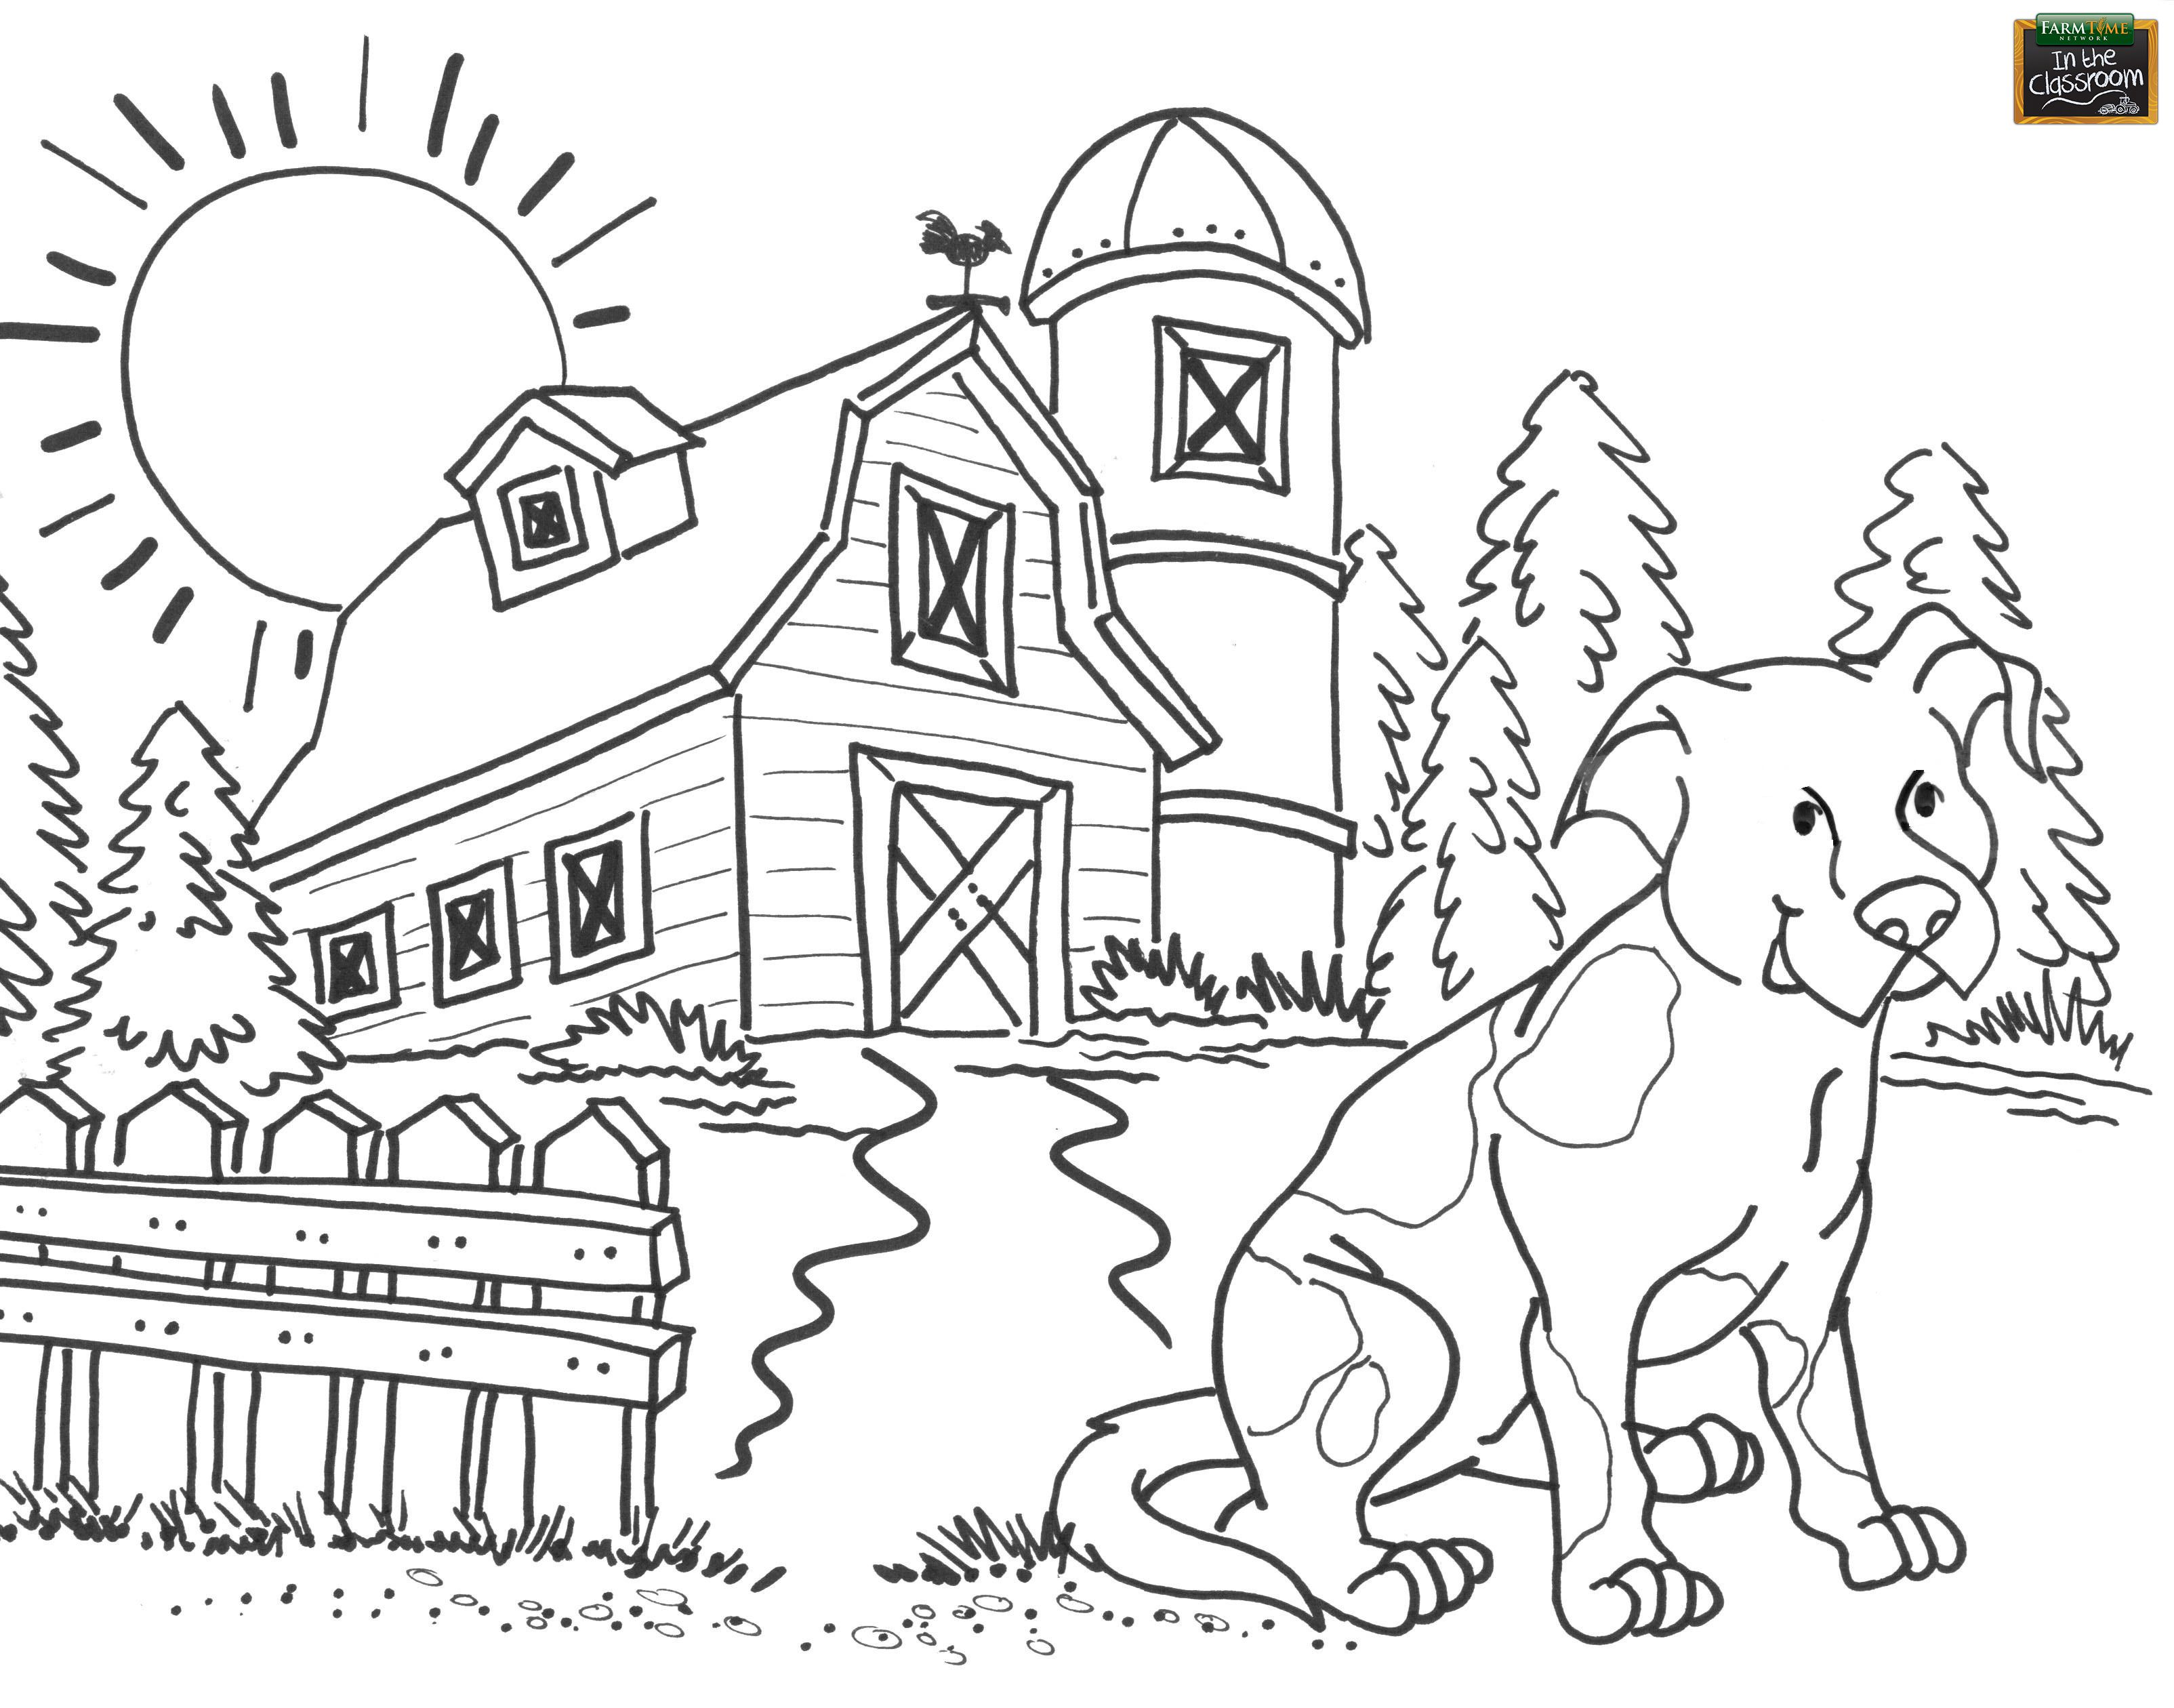 Online coloring tools - Free Teaching Tool Printable Agricultural Coloring Page For Kids Http Farmtimeclassroom